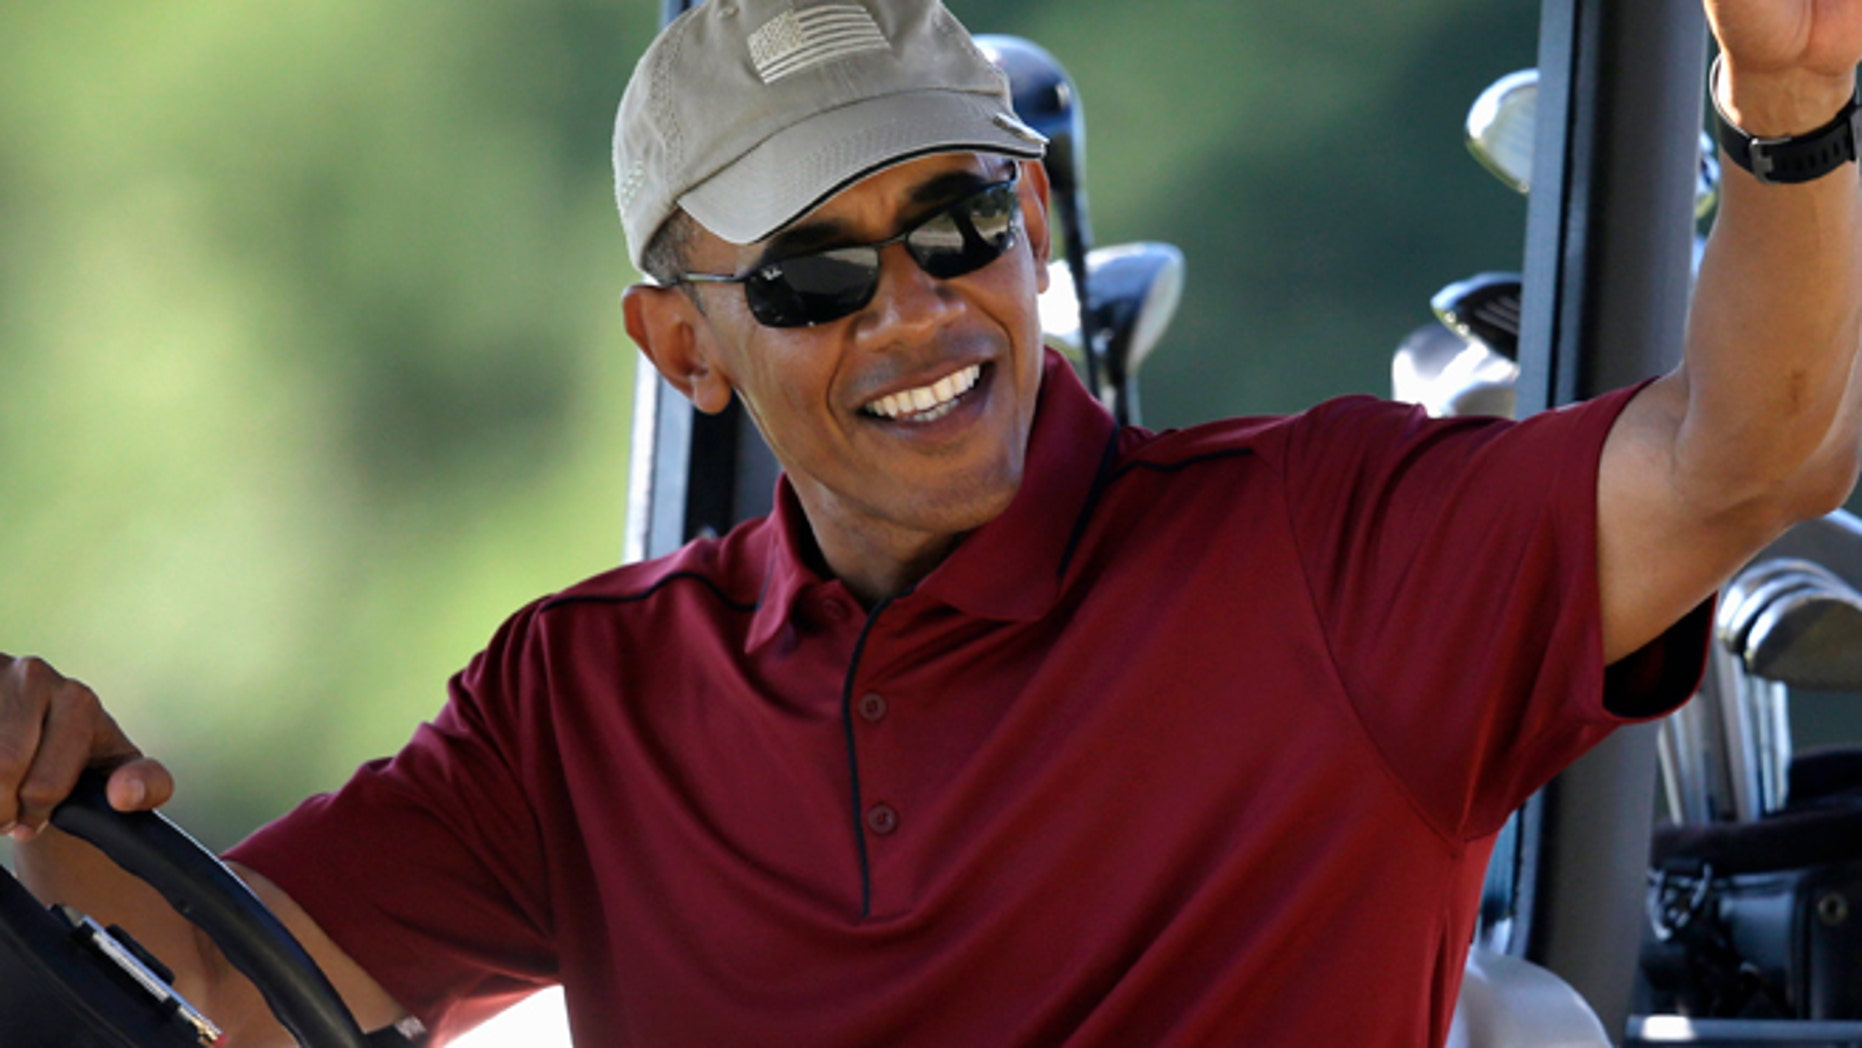 Aug. 14, 2015: President Barack Obama waves from a golf cart while golfing at Farm Neck Golf Club, in Oak Bluffs, Mass., on the island of Martha's Vineyard.